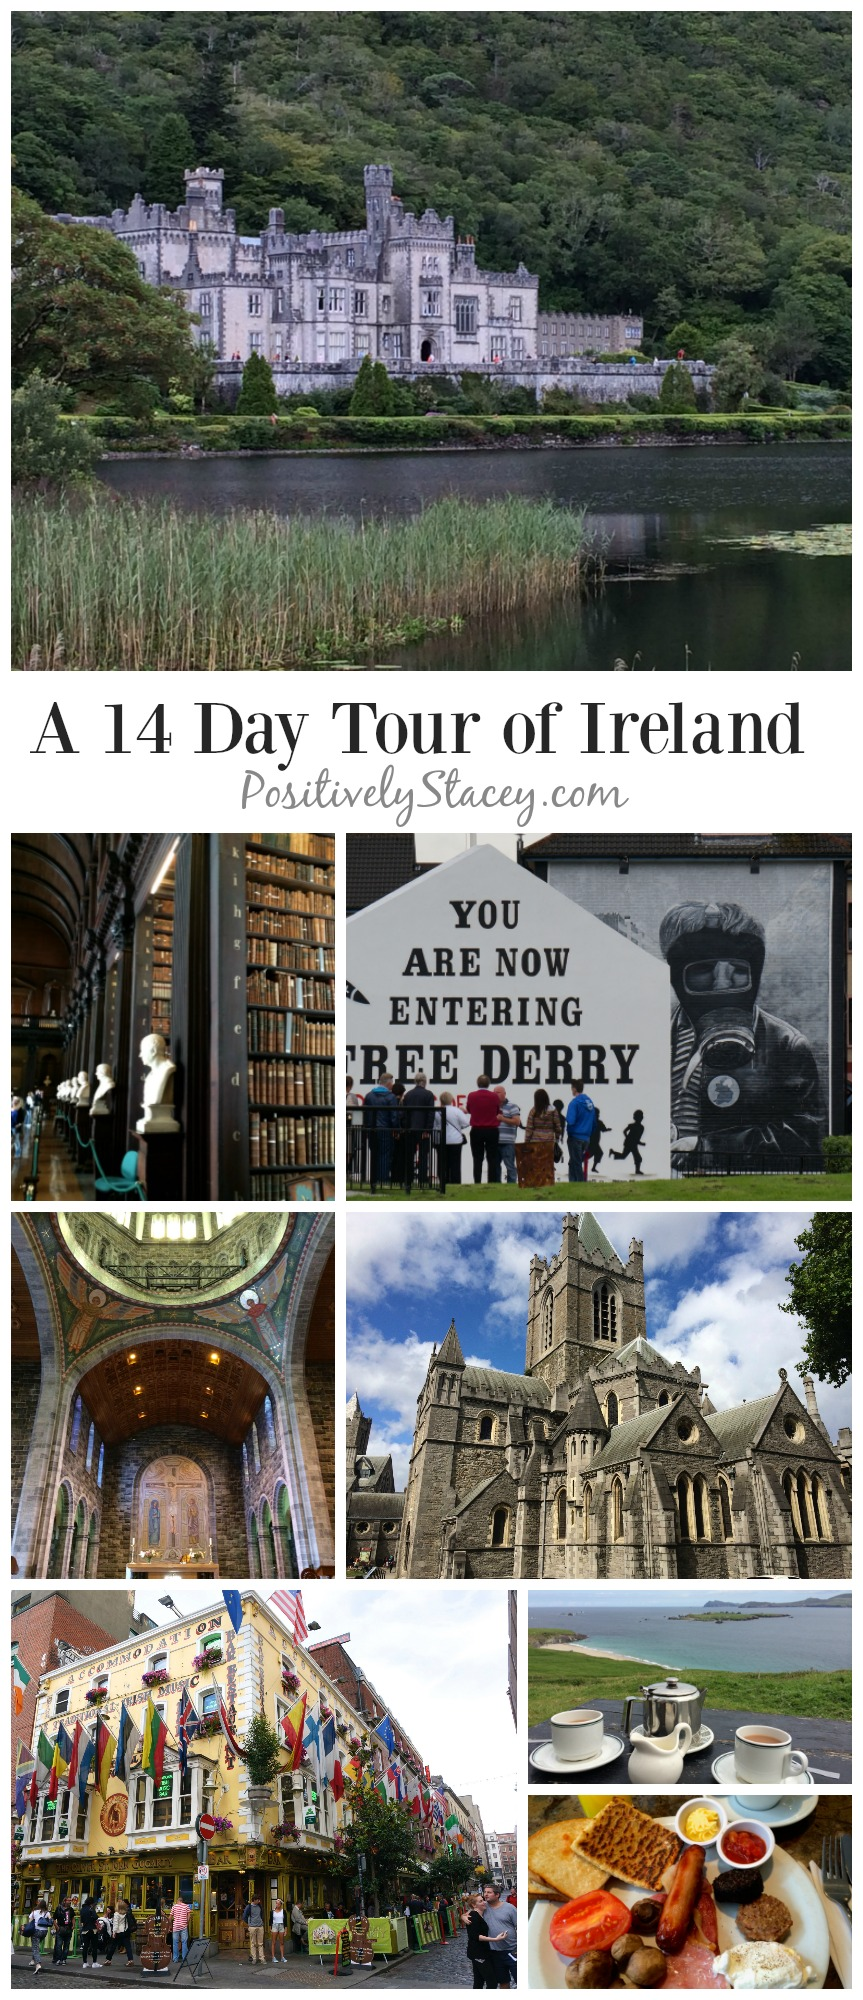 Our Ireland Itinerary - A 14 Day Tour of the Island